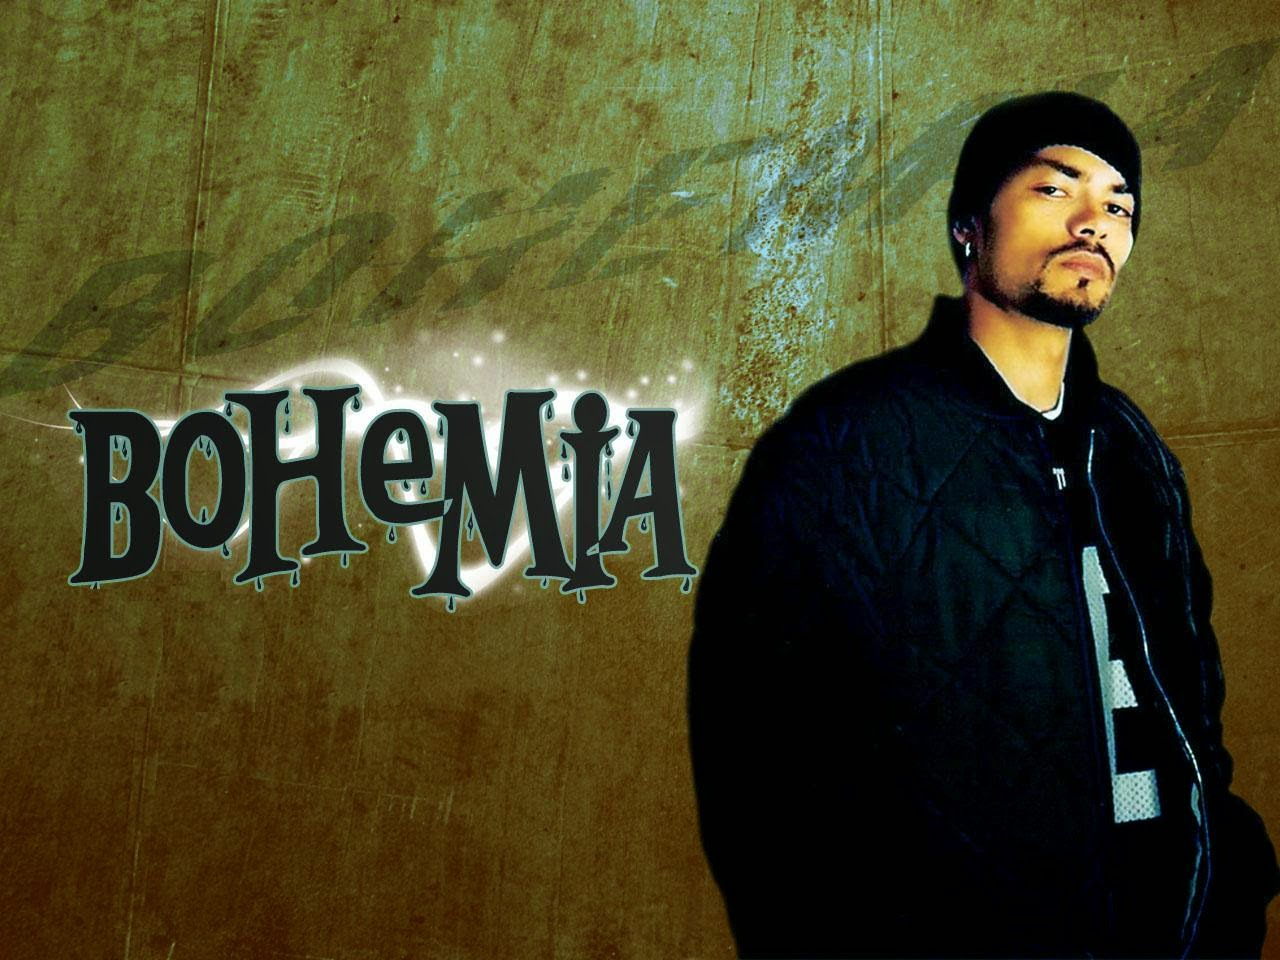 Words Celebrities Wallpapers Bohemia Latest Hd Wallpapers 2014